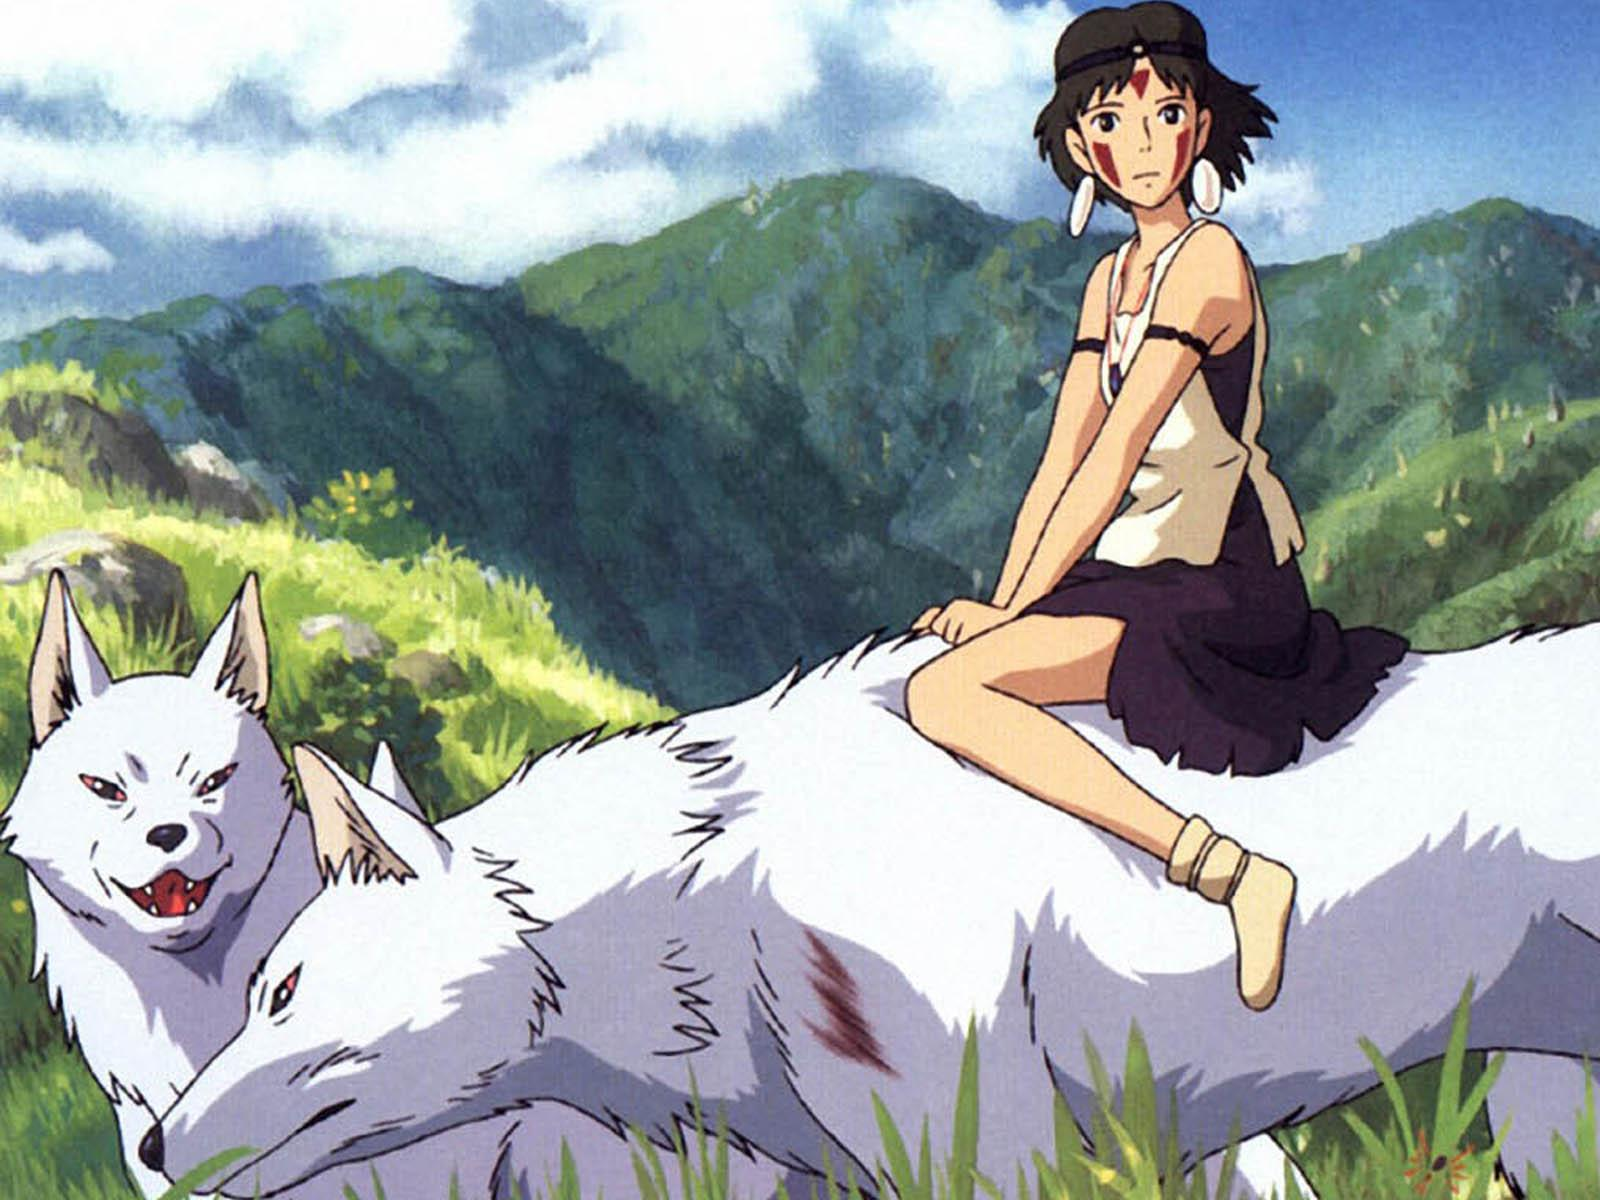 Lipmags Kickass Feminists On Film Princess Mononoke